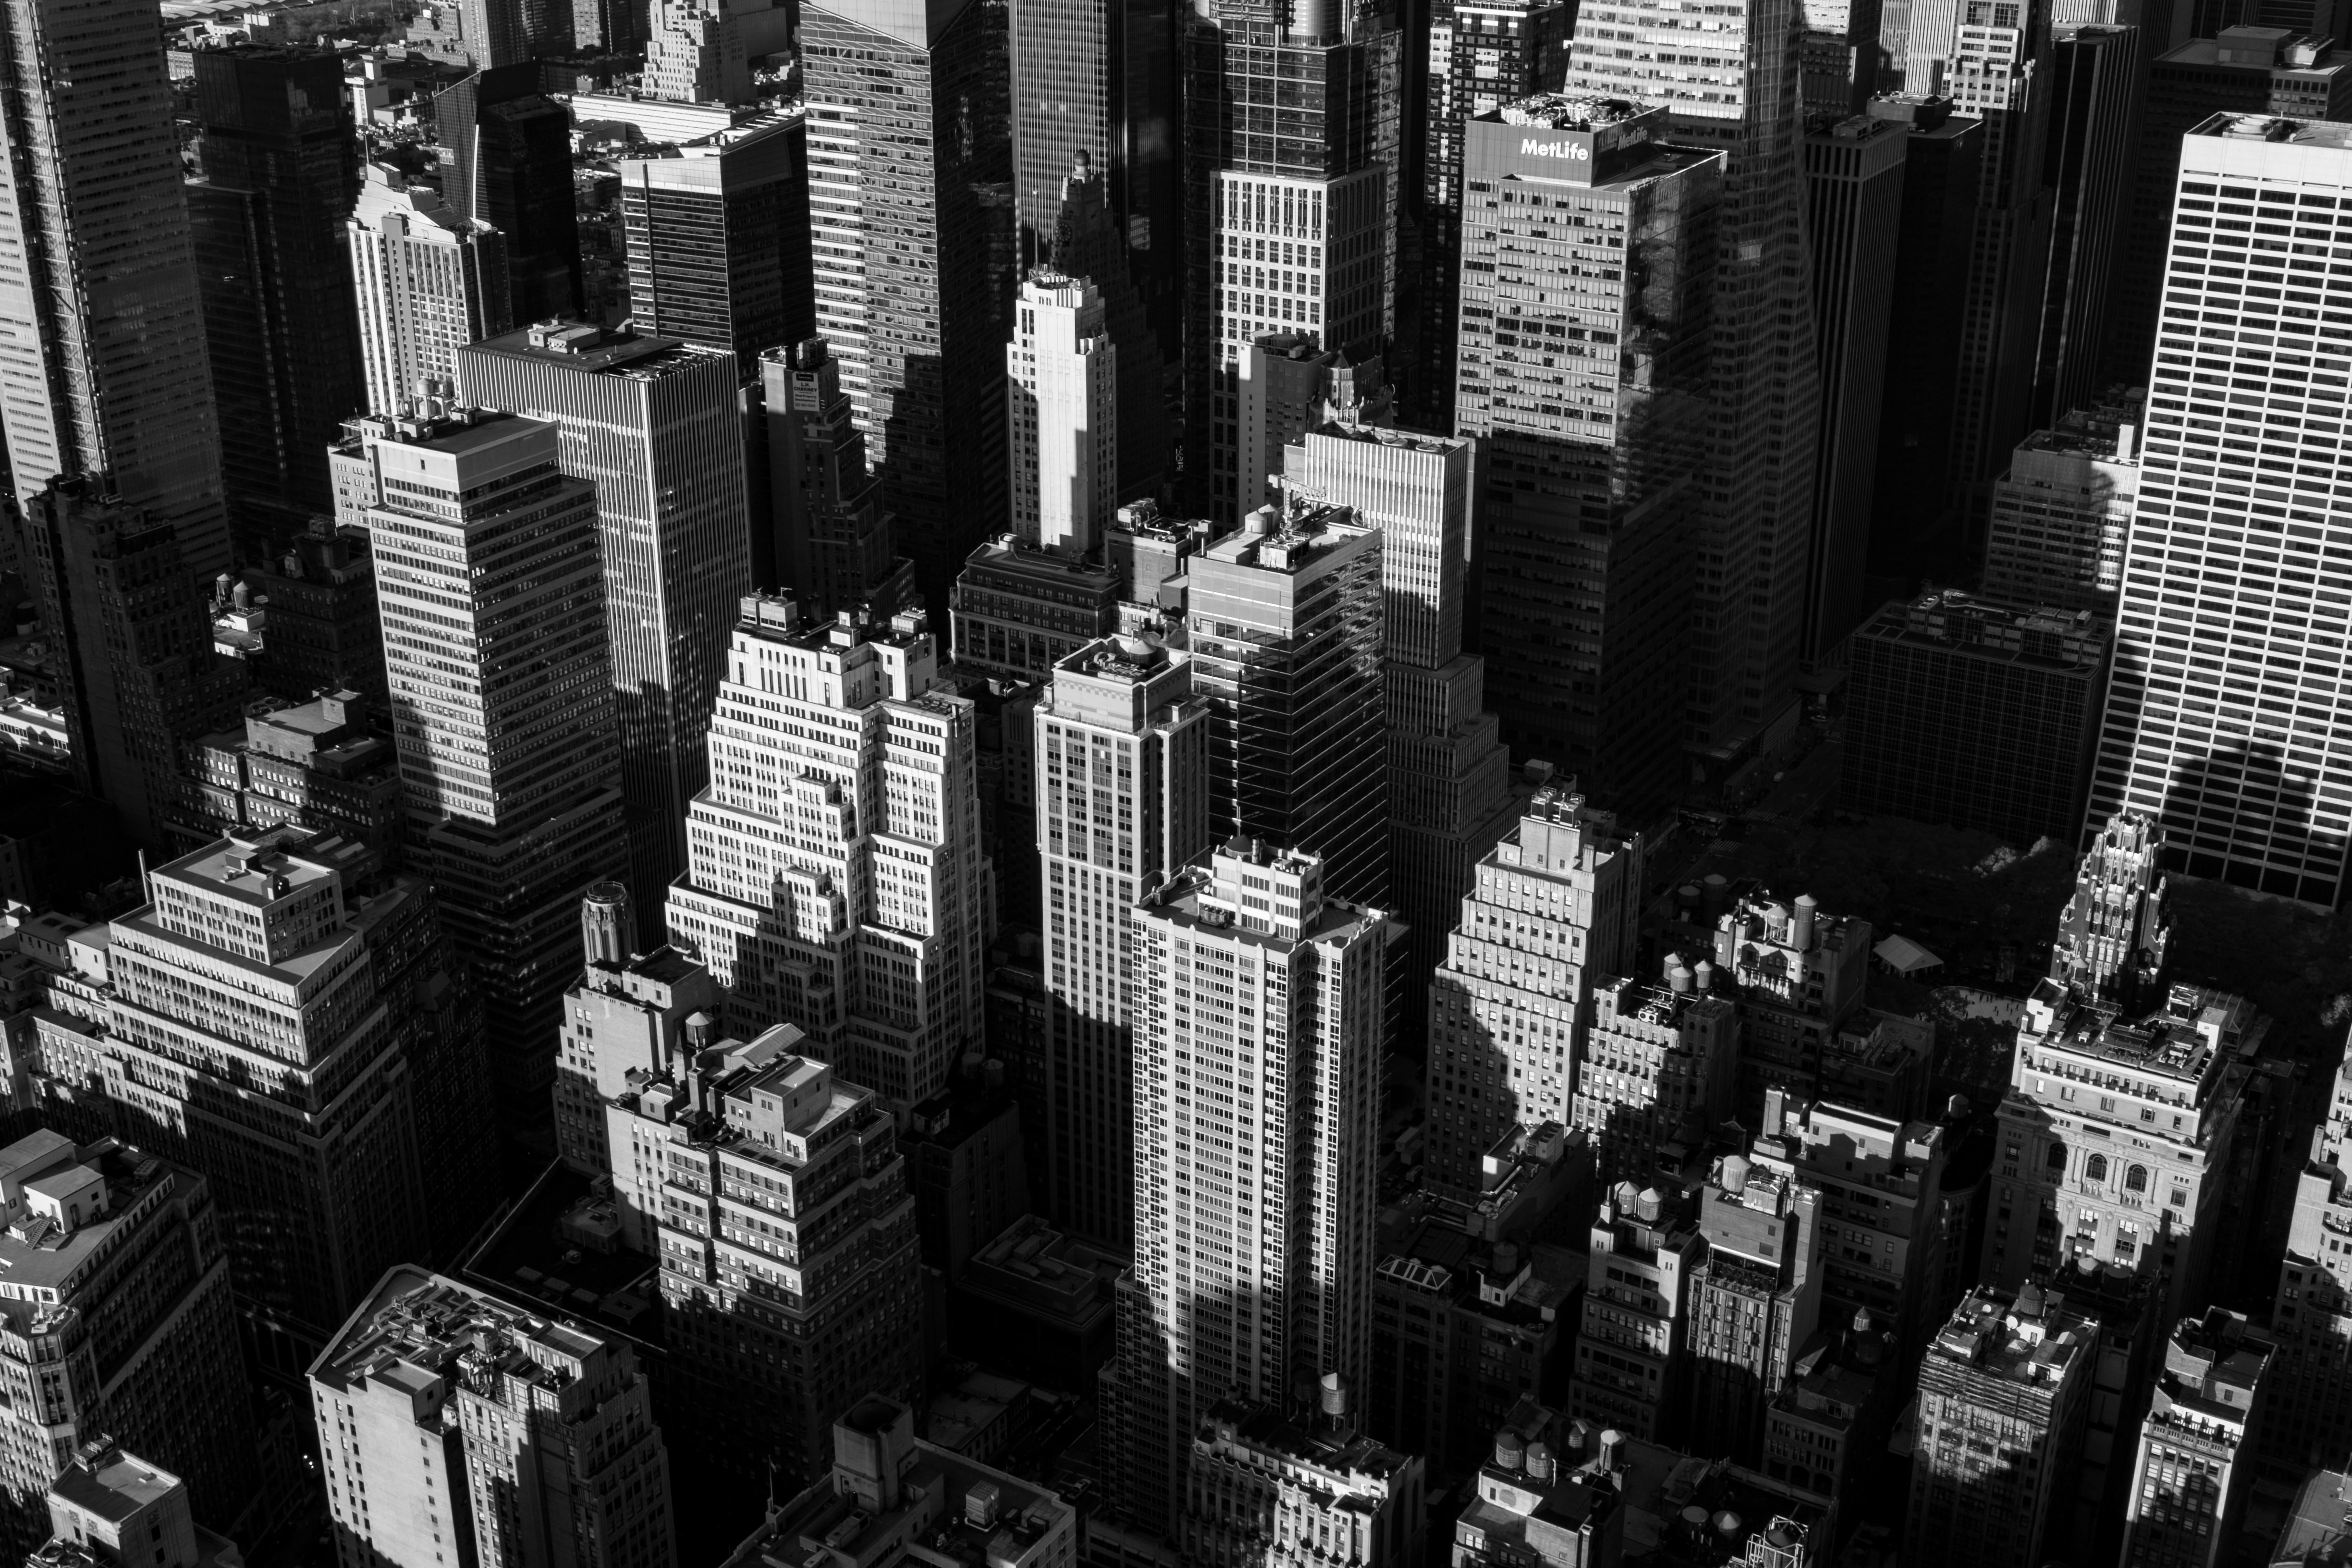 A black-and-white cityscape of New York